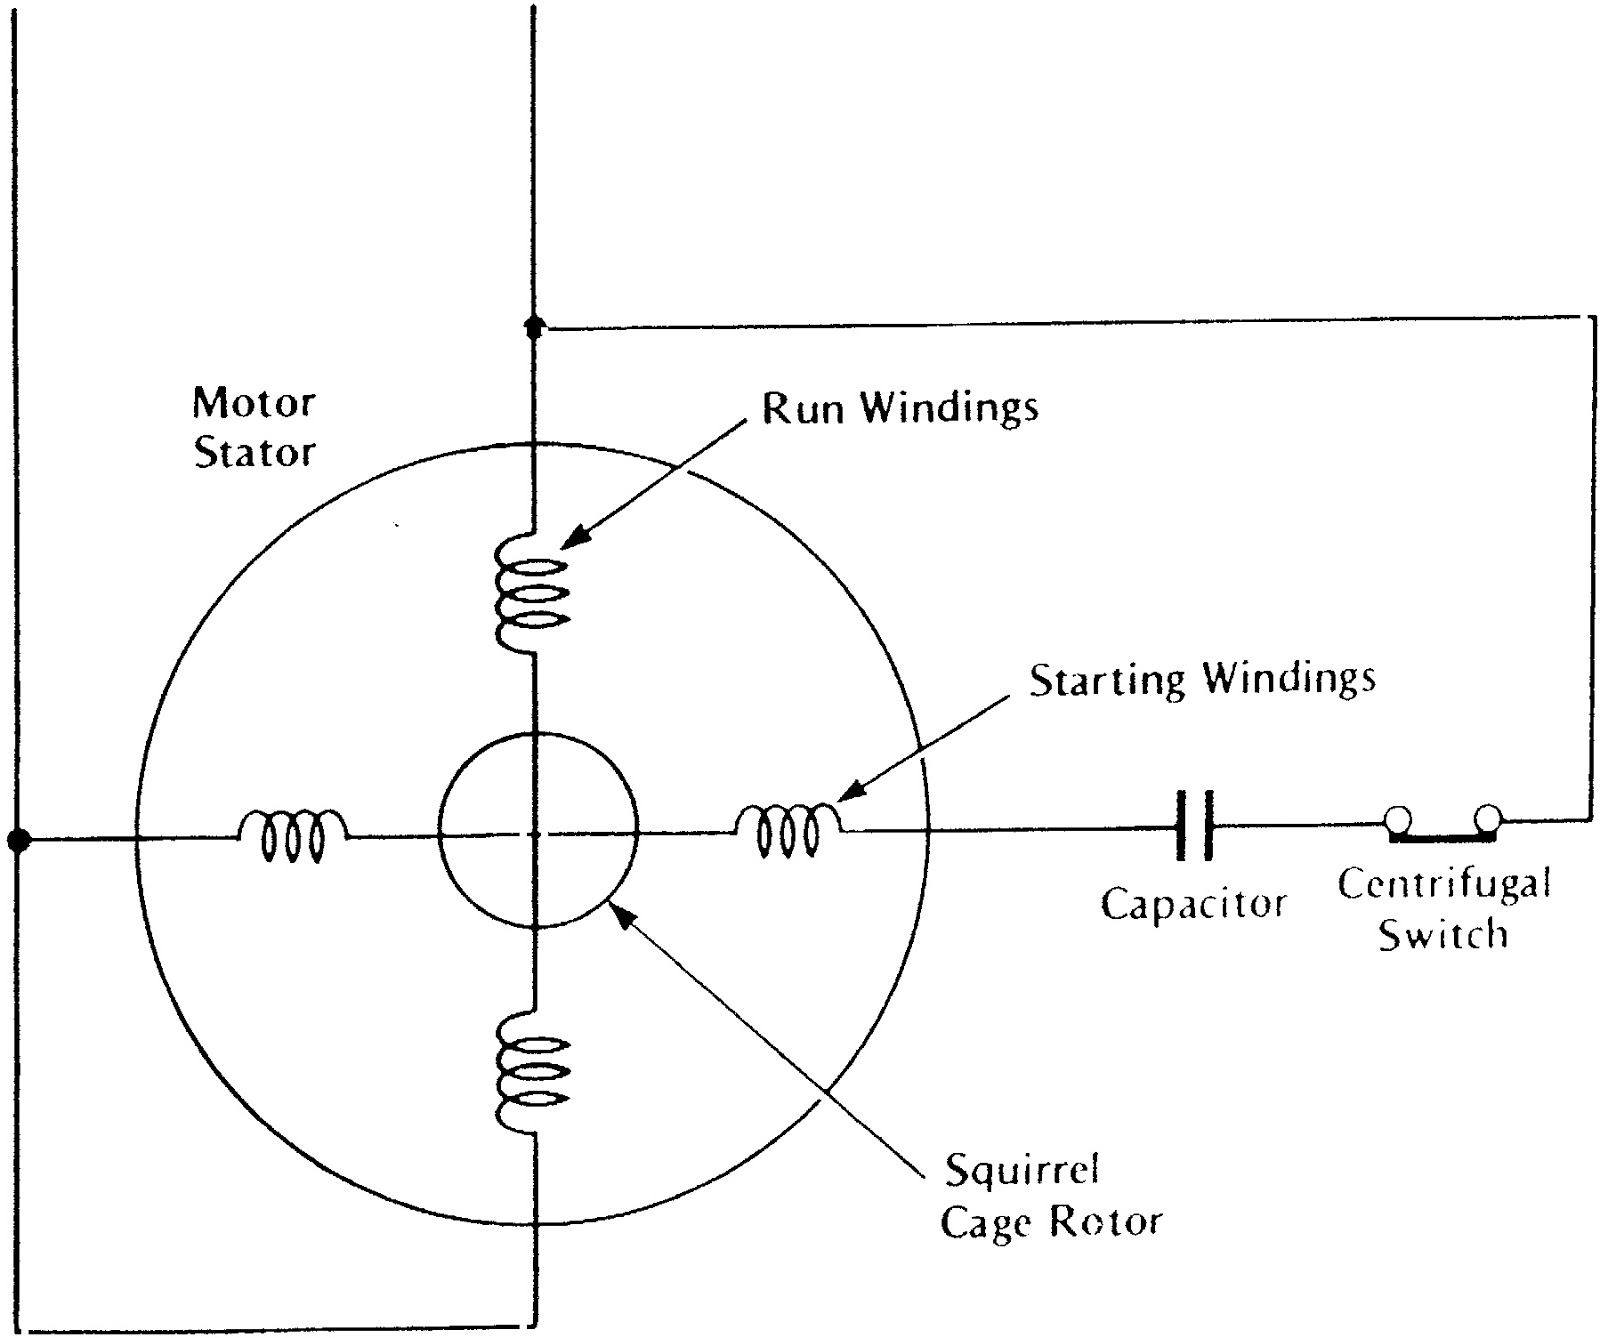 Engineering PhotosVideos and Articels Engineering Search Engine – Rotor And Stator Single Phase Motor Wiring Diagrams